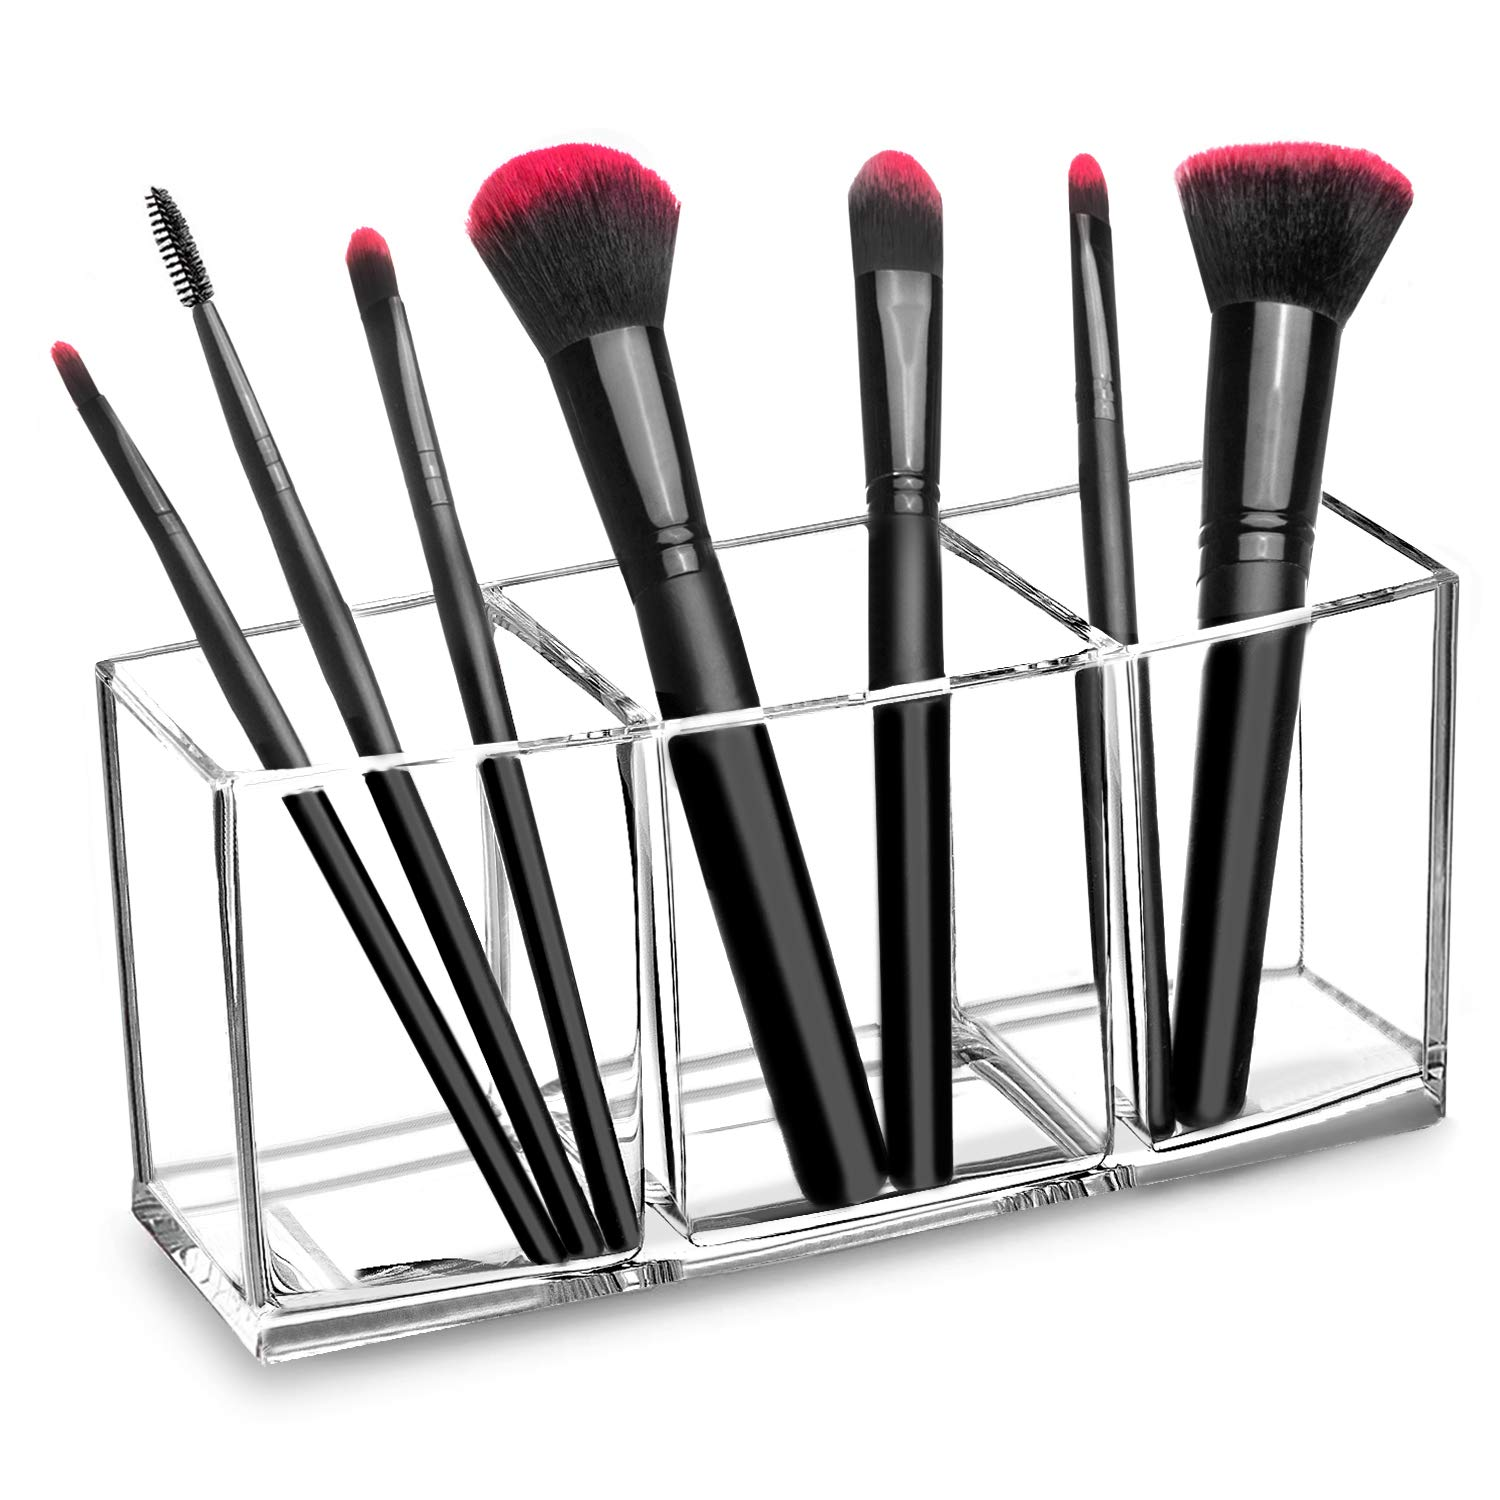 hblife Clear Makeup Brush Holder Organizer, 3 Slot Acrylic Cosmetics Brushes Storage Solution